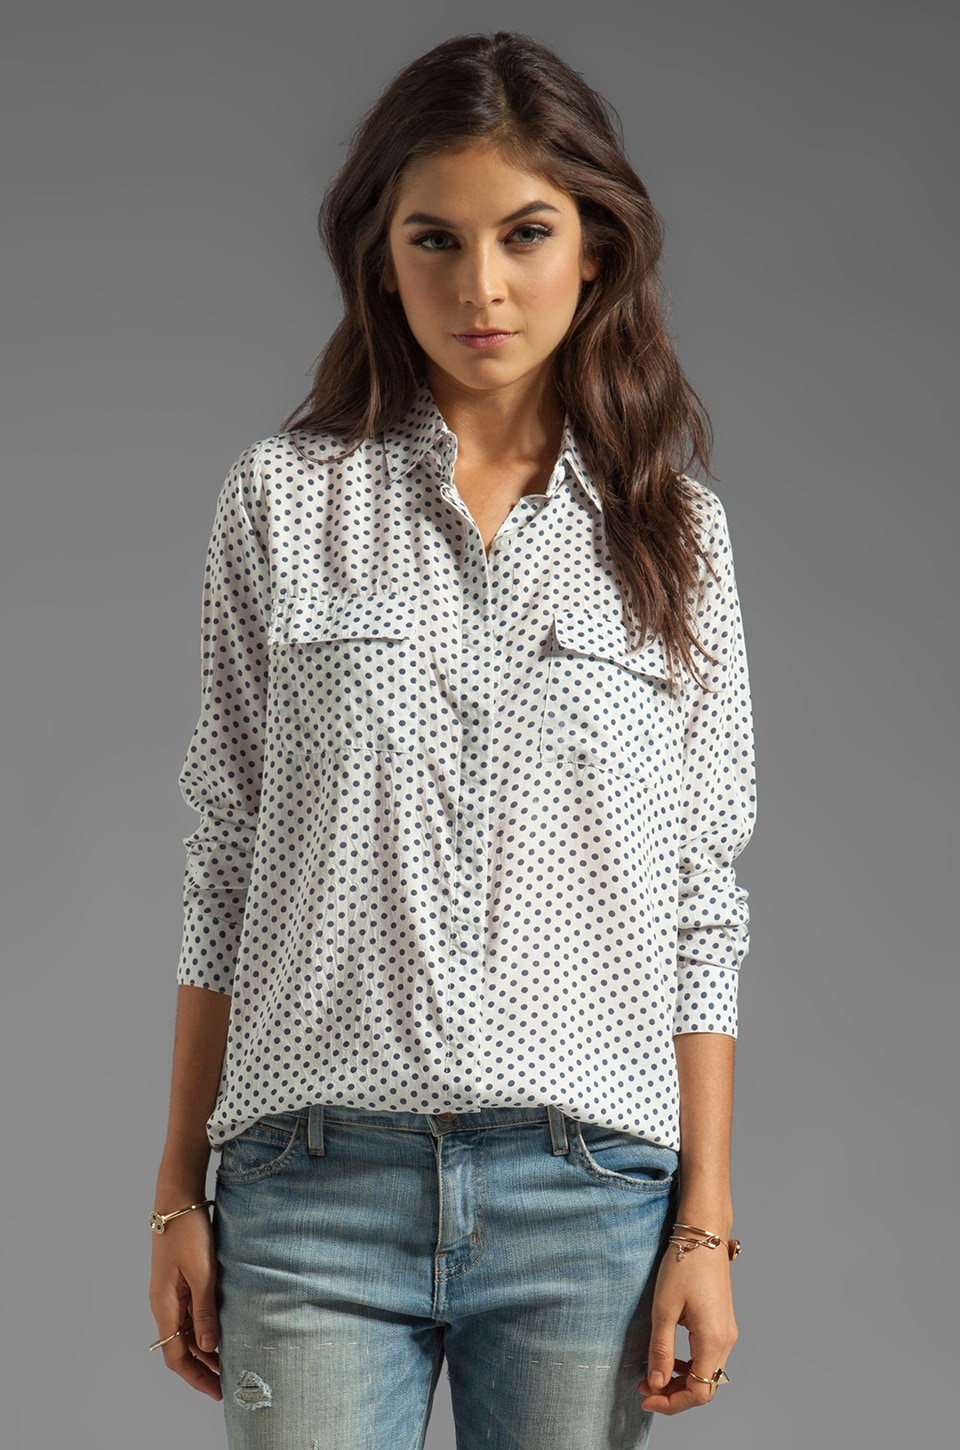 NEUW Polka Dot Button Up in Blue Spot